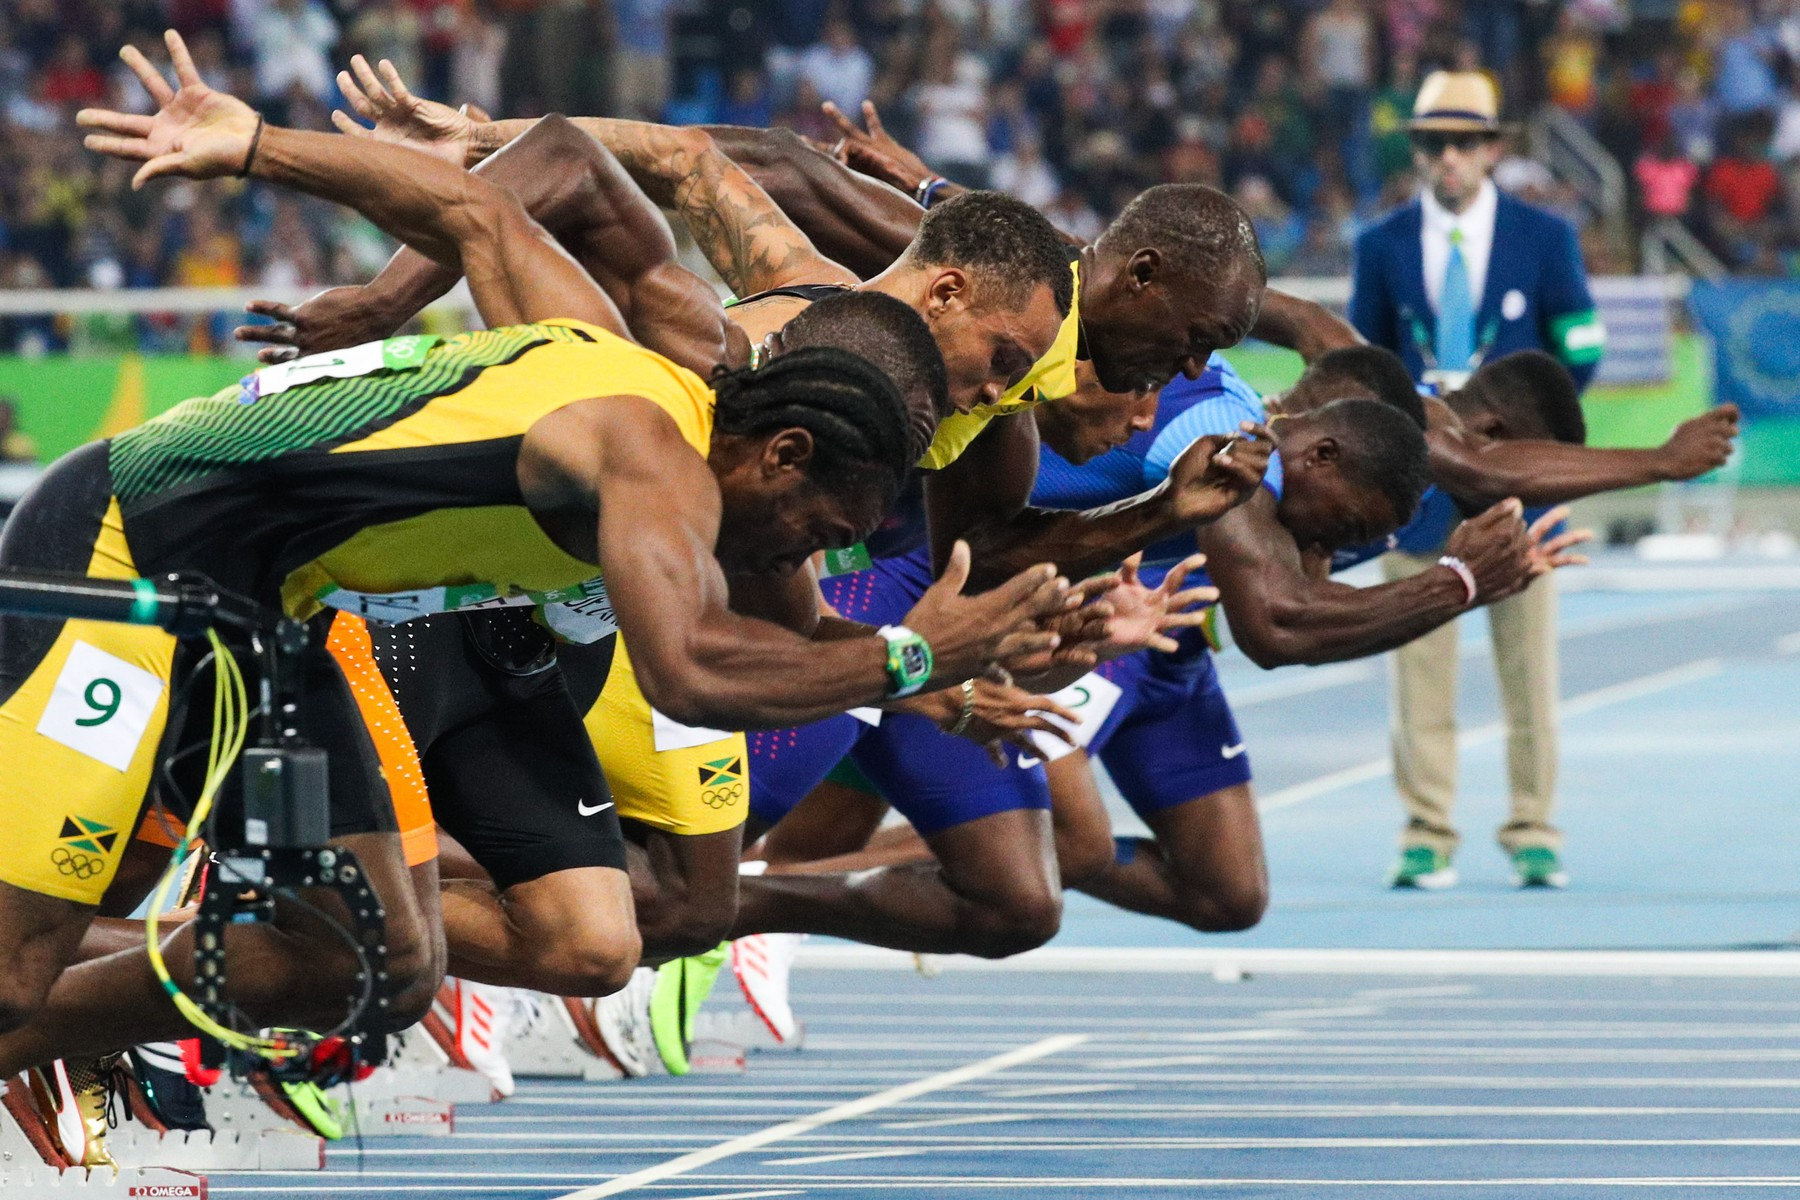 August 14, 2016 - Rio de Janeiro, Brazil: Players compete during the final of men's 100m at the 2016 Rio Olympic Games in Rio de Janeiro, Brazil, on Aug. 14, 2016. Usain Bolt won the gold medal with 9.81., Image: 296937111, License: Rights-managed, Restrictions: No publication in Australia, Belgium, China, France, Poland and Russia, Model Release: no, Credit line: Profimedia, Polaris